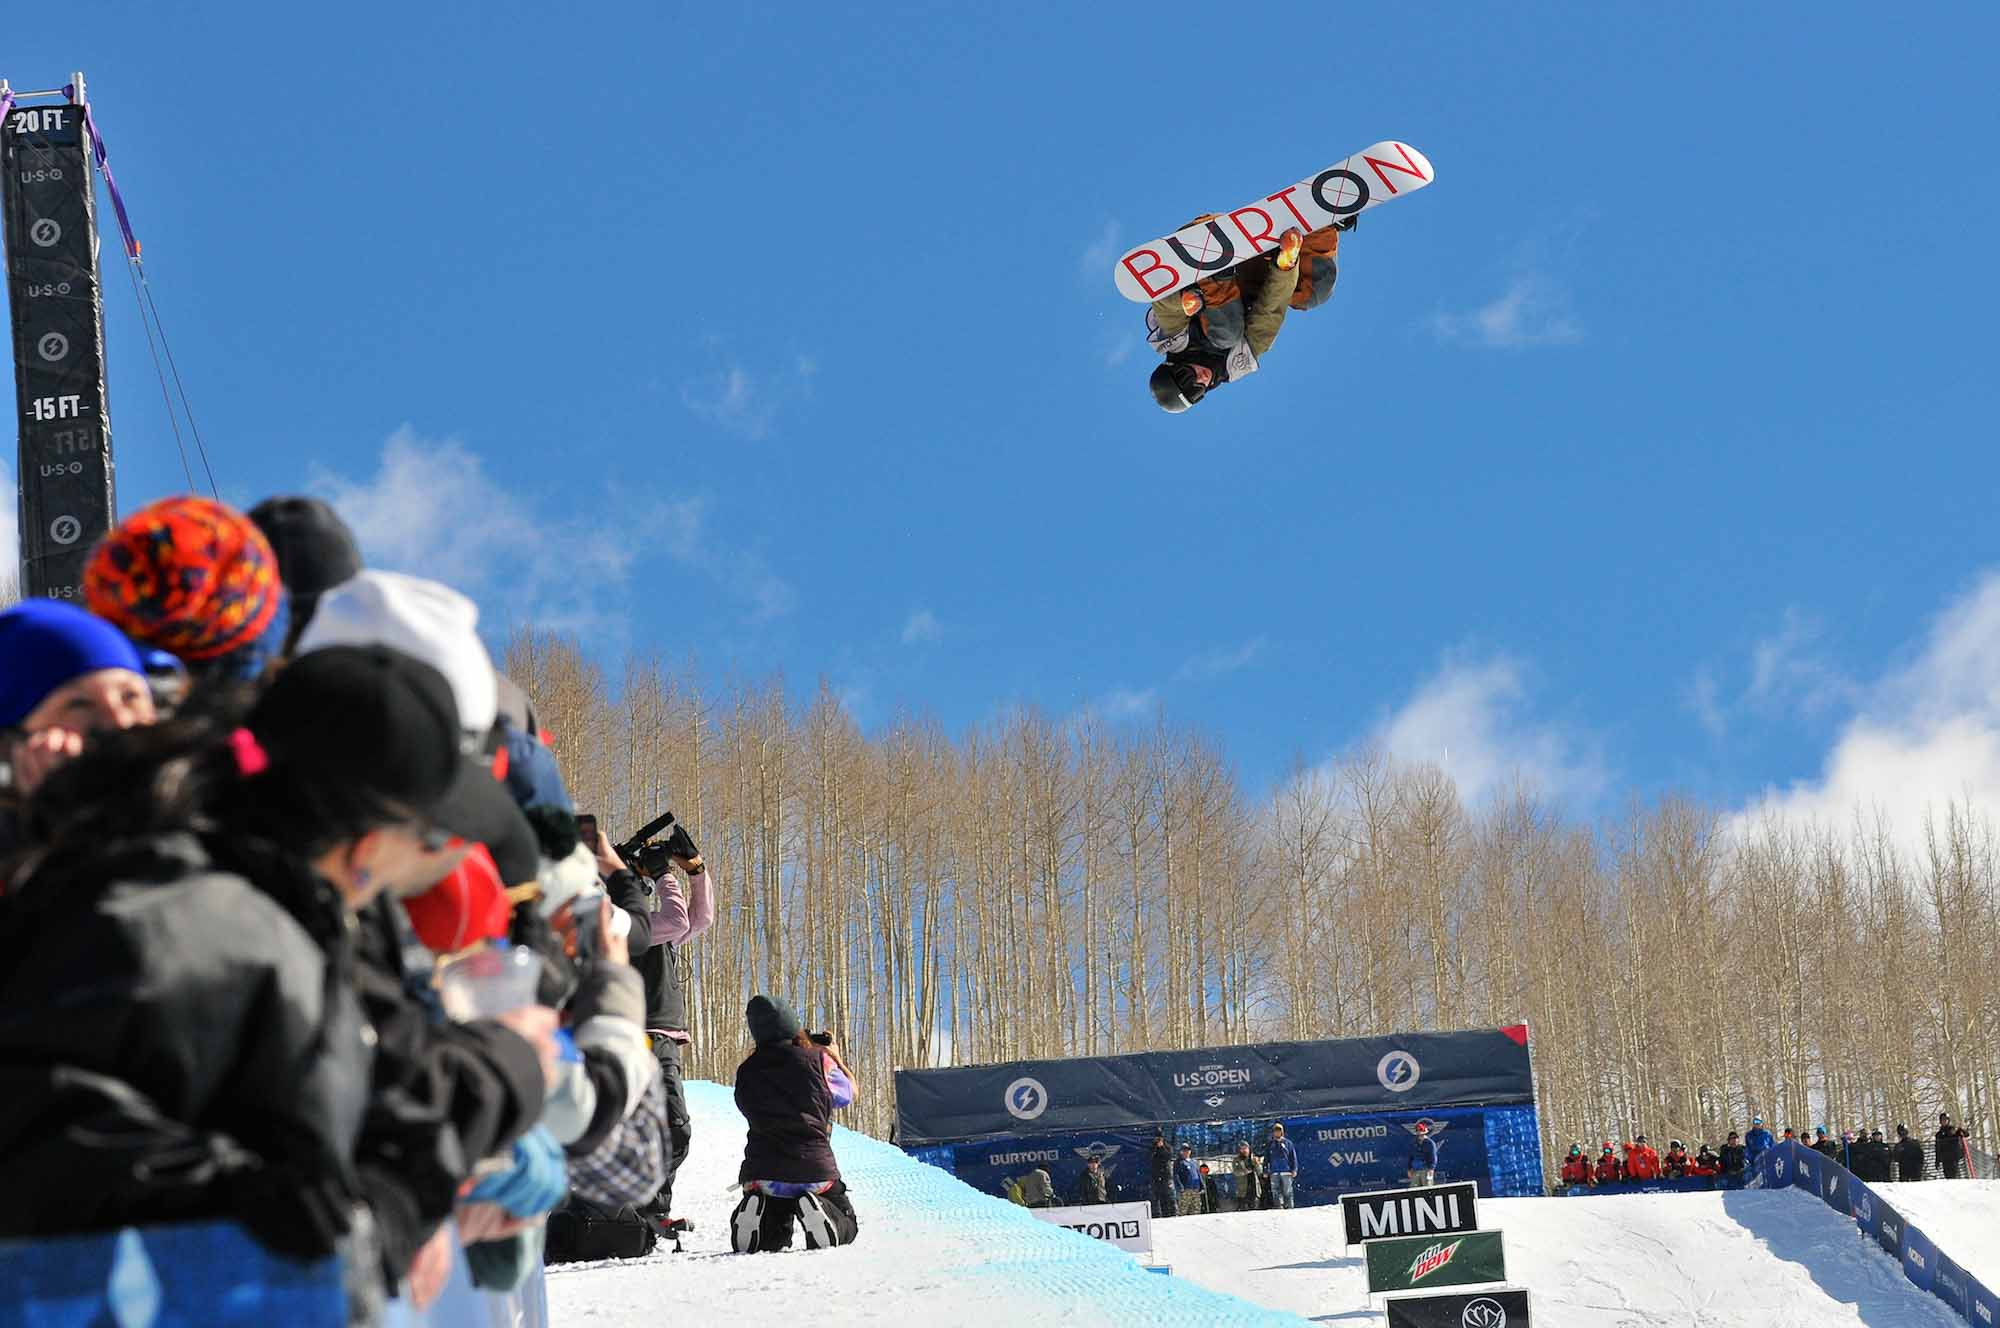 David Habluetzel, of Switzerland, soars out of the halfpipe during the Burton U.S. Open Snowboarding Championships halfpipe finals in Vail, Colo. on Saturday, March 8, 2014. Habluetzel finished third with an overall score of 83.23.